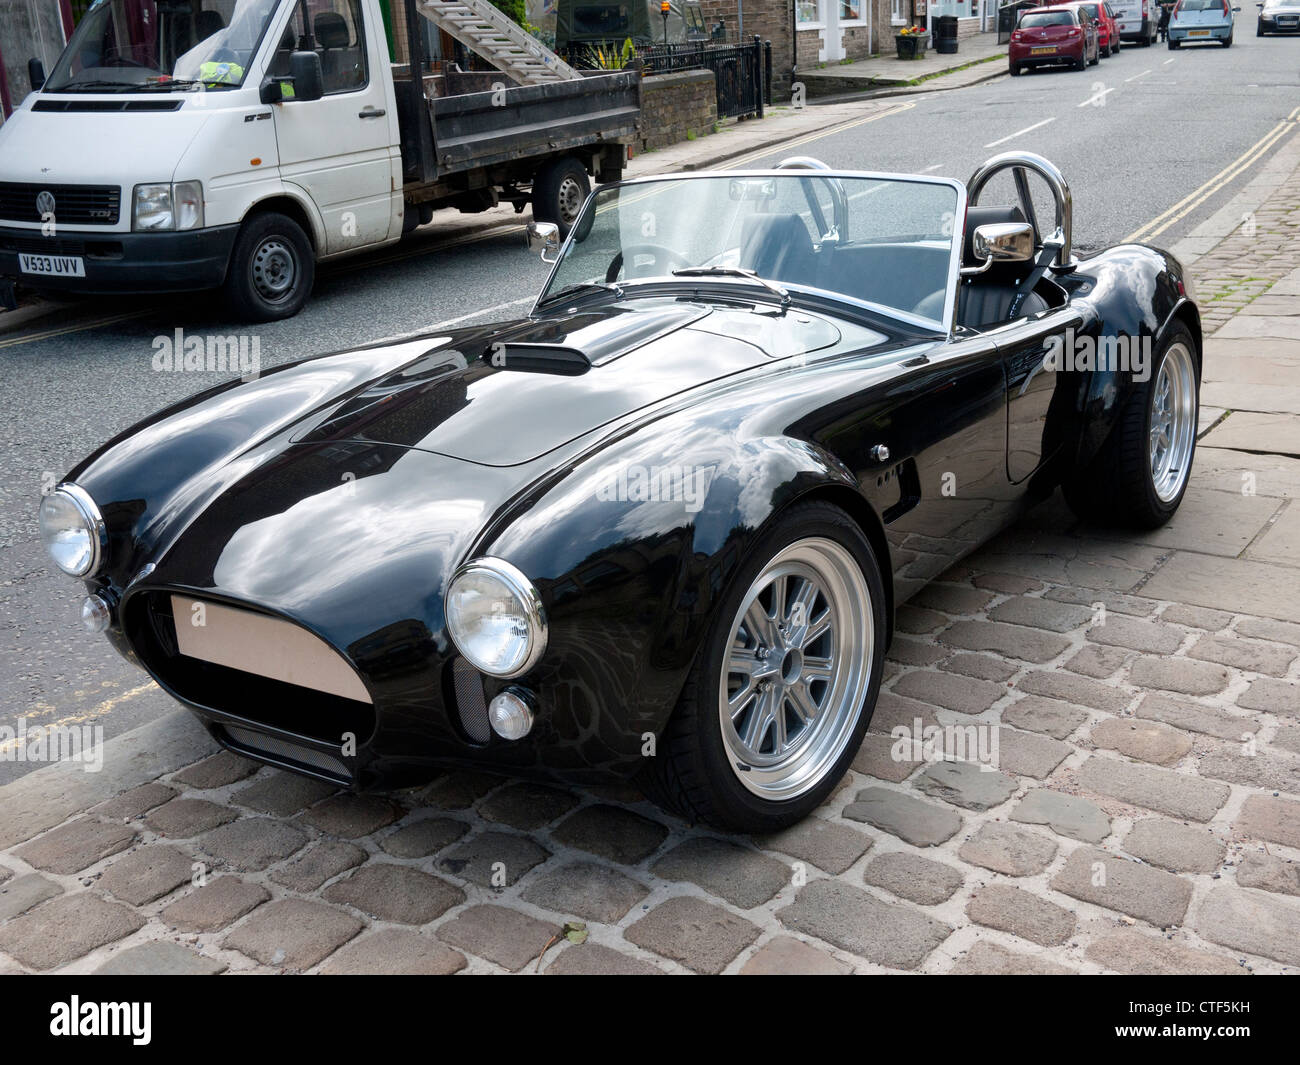 ac cobra replica kit car uk stock photo royalty free image 49506229 alamy. Black Bedroom Furniture Sets. Home Design Ideas